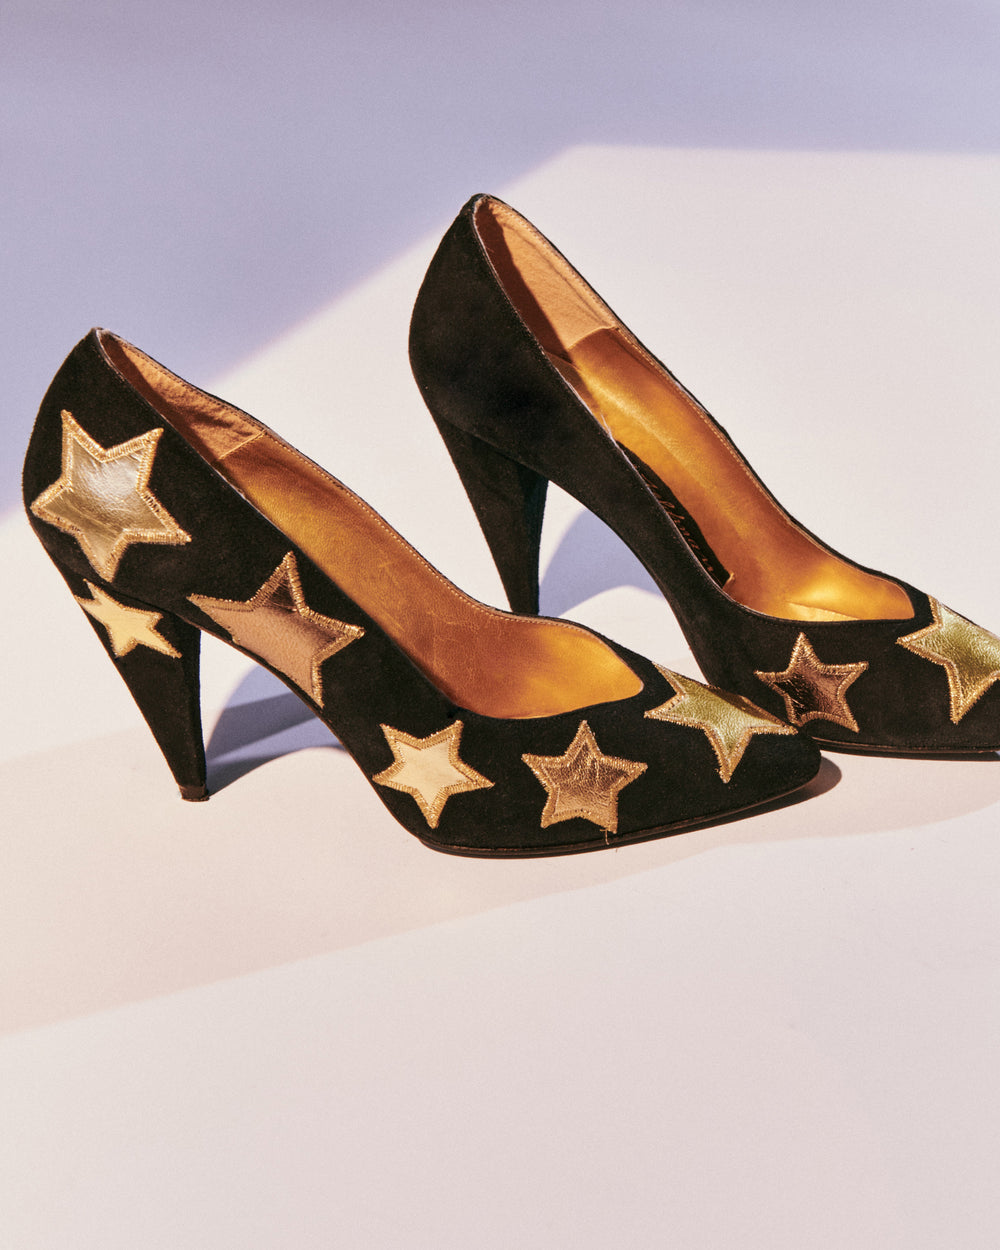 Suede Heels with Metallic Stars